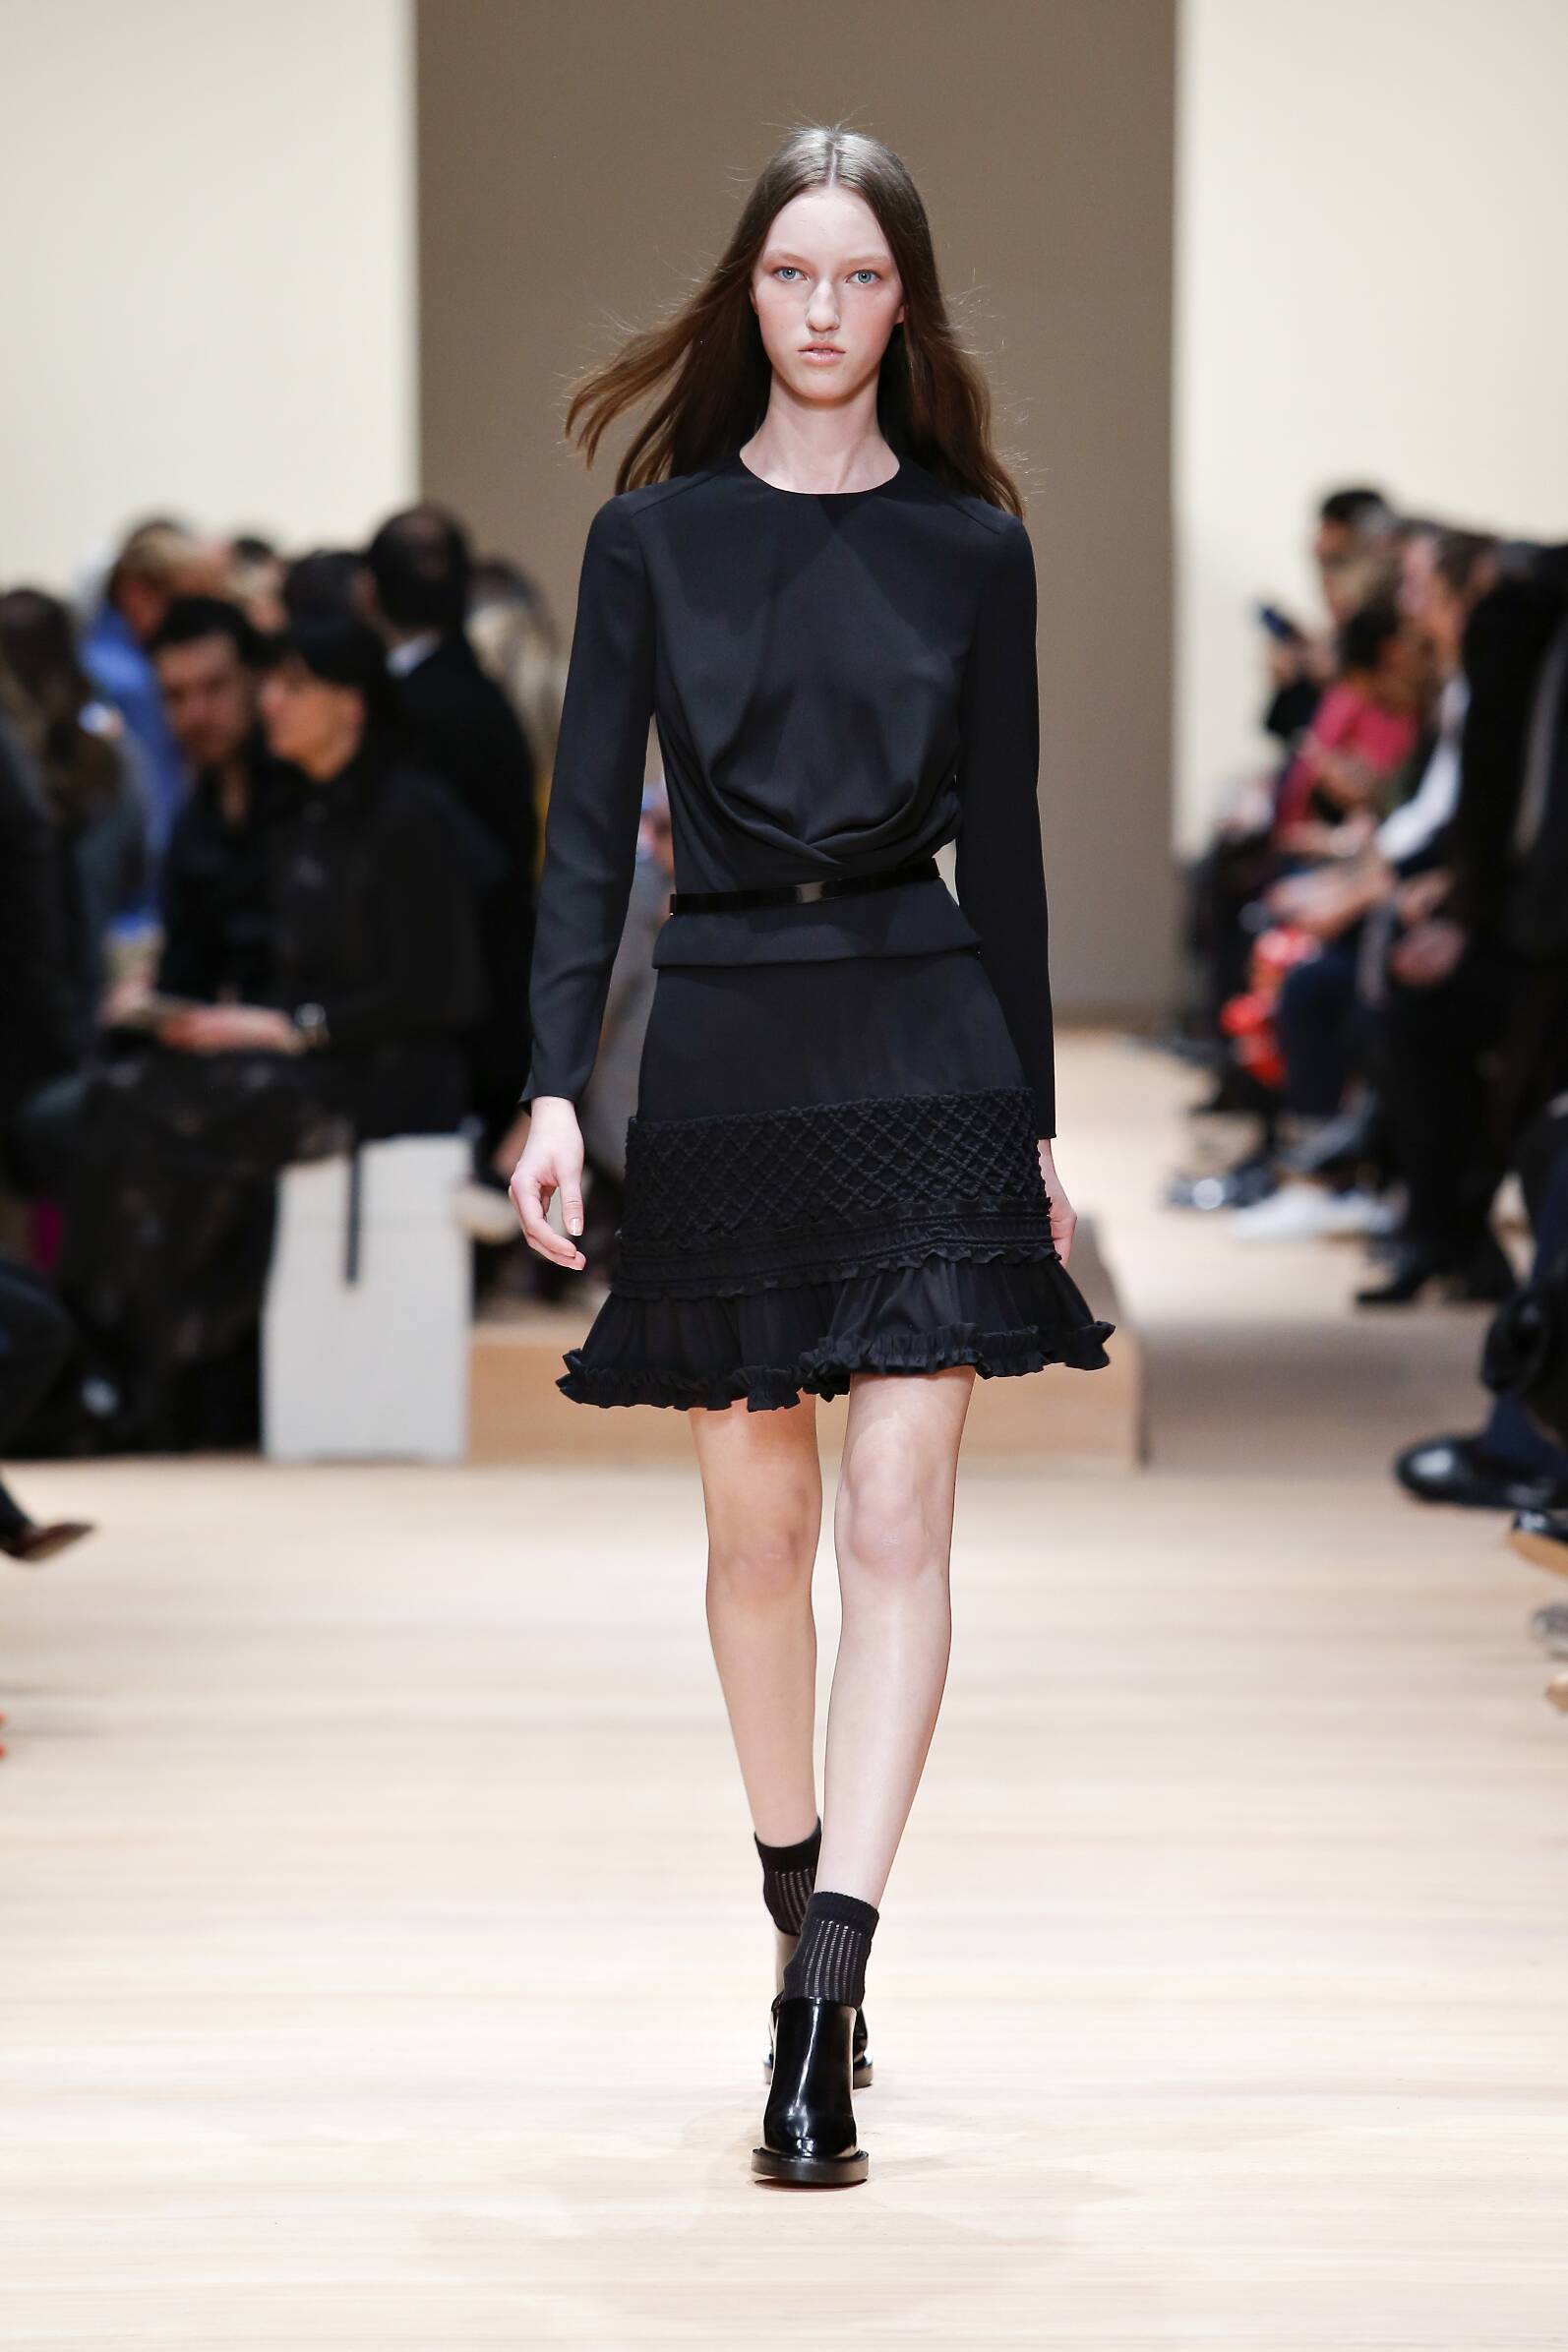 Catwalk Carven Fall Winter 2015 16 Women's Collection Paris Fashion Week